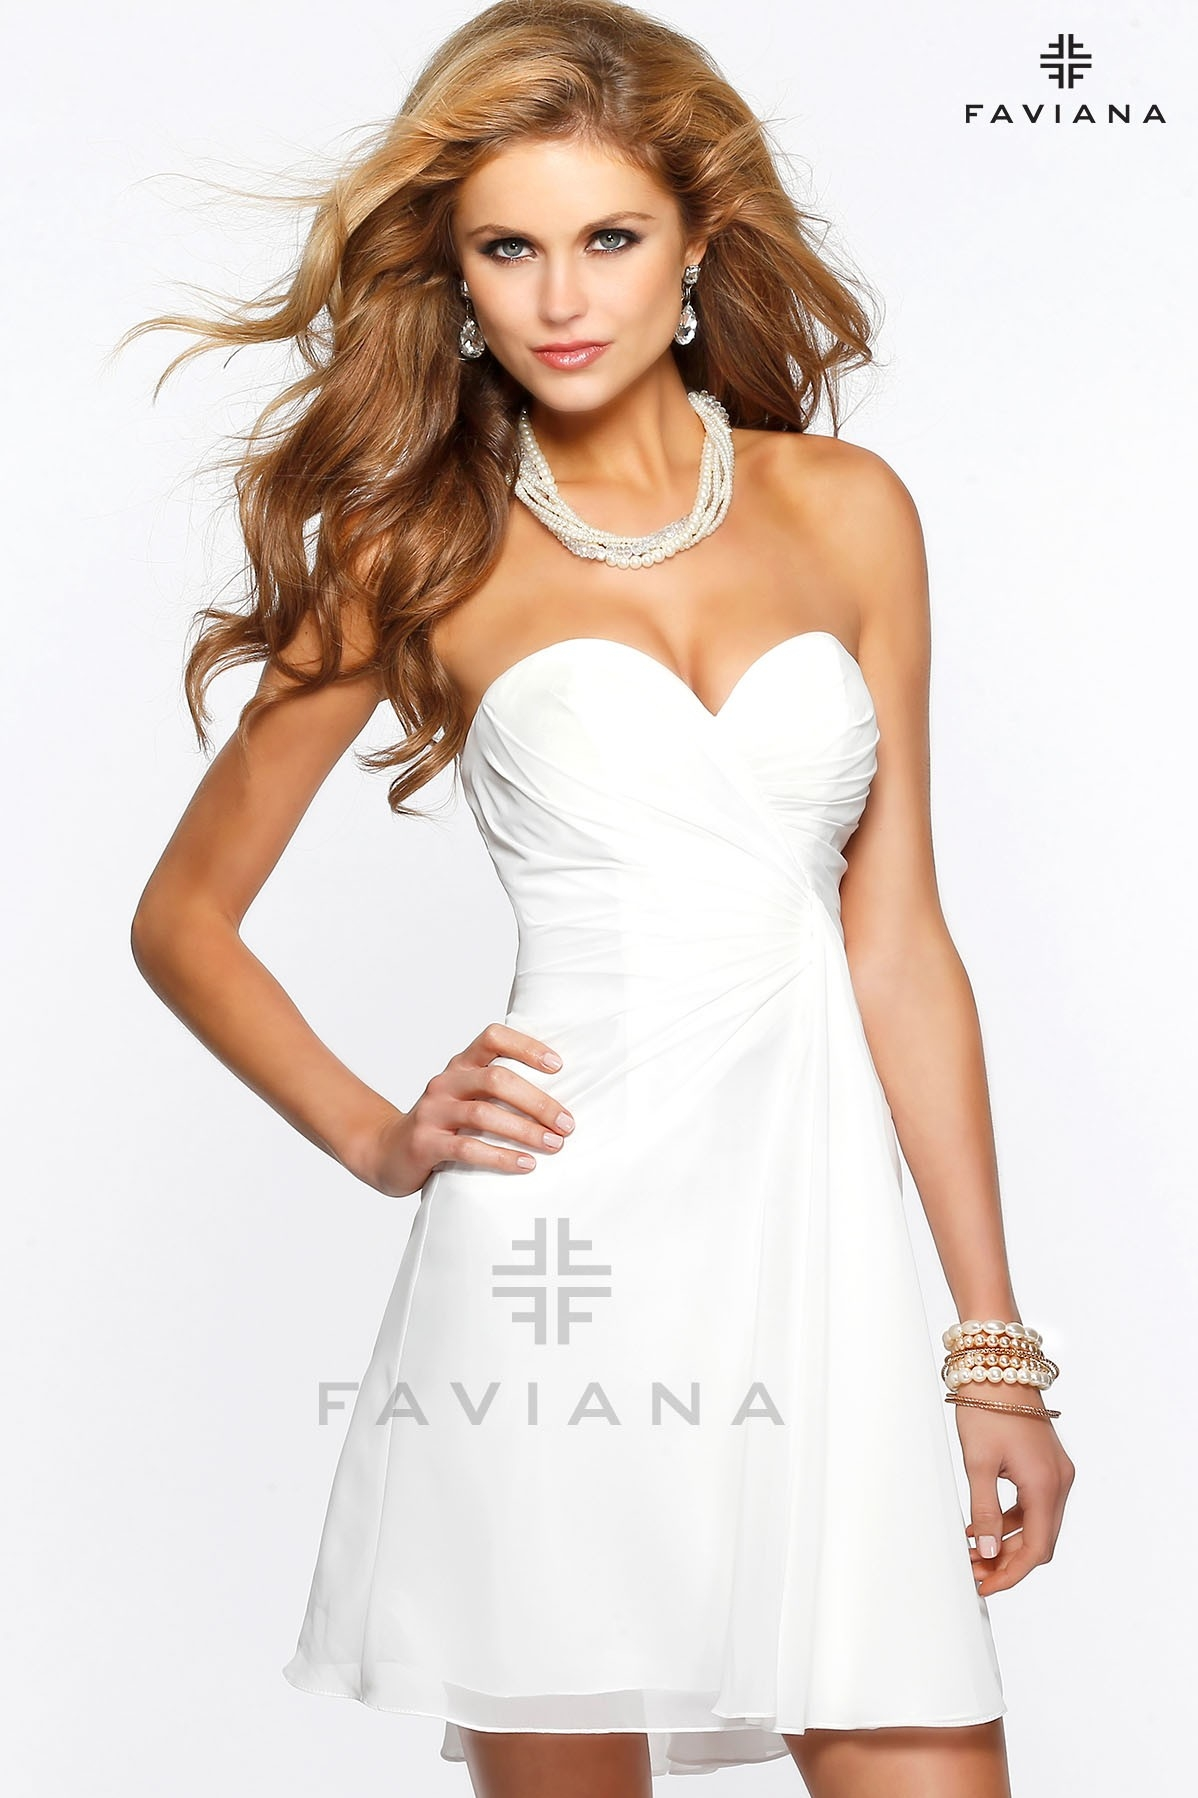 Style: 7075a - Prom Dresses -